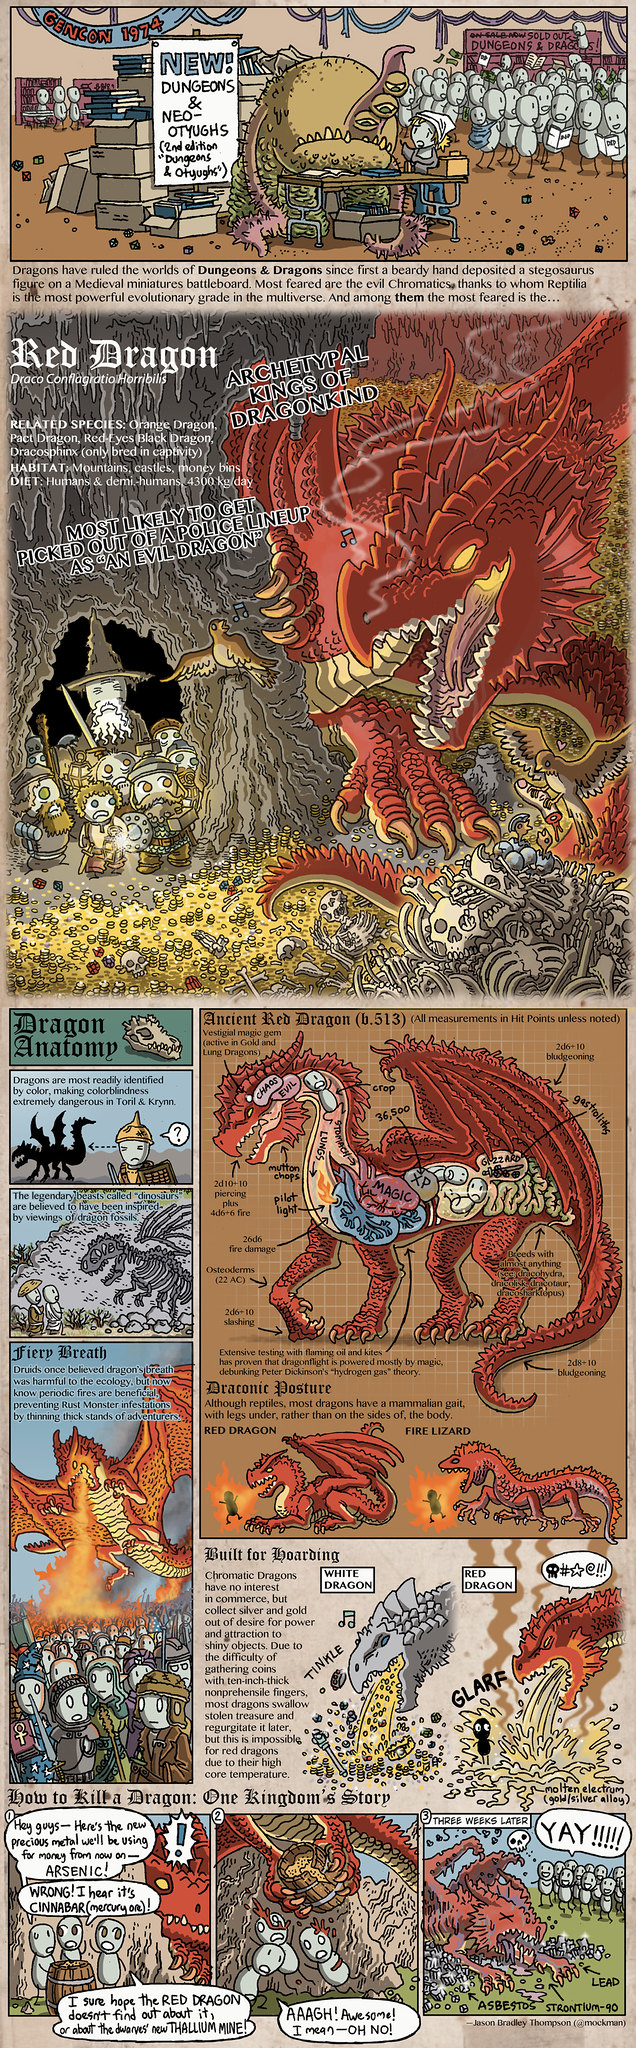 The Dragons of Dungeons & Dragons by Jason Thompson - Red Dragon